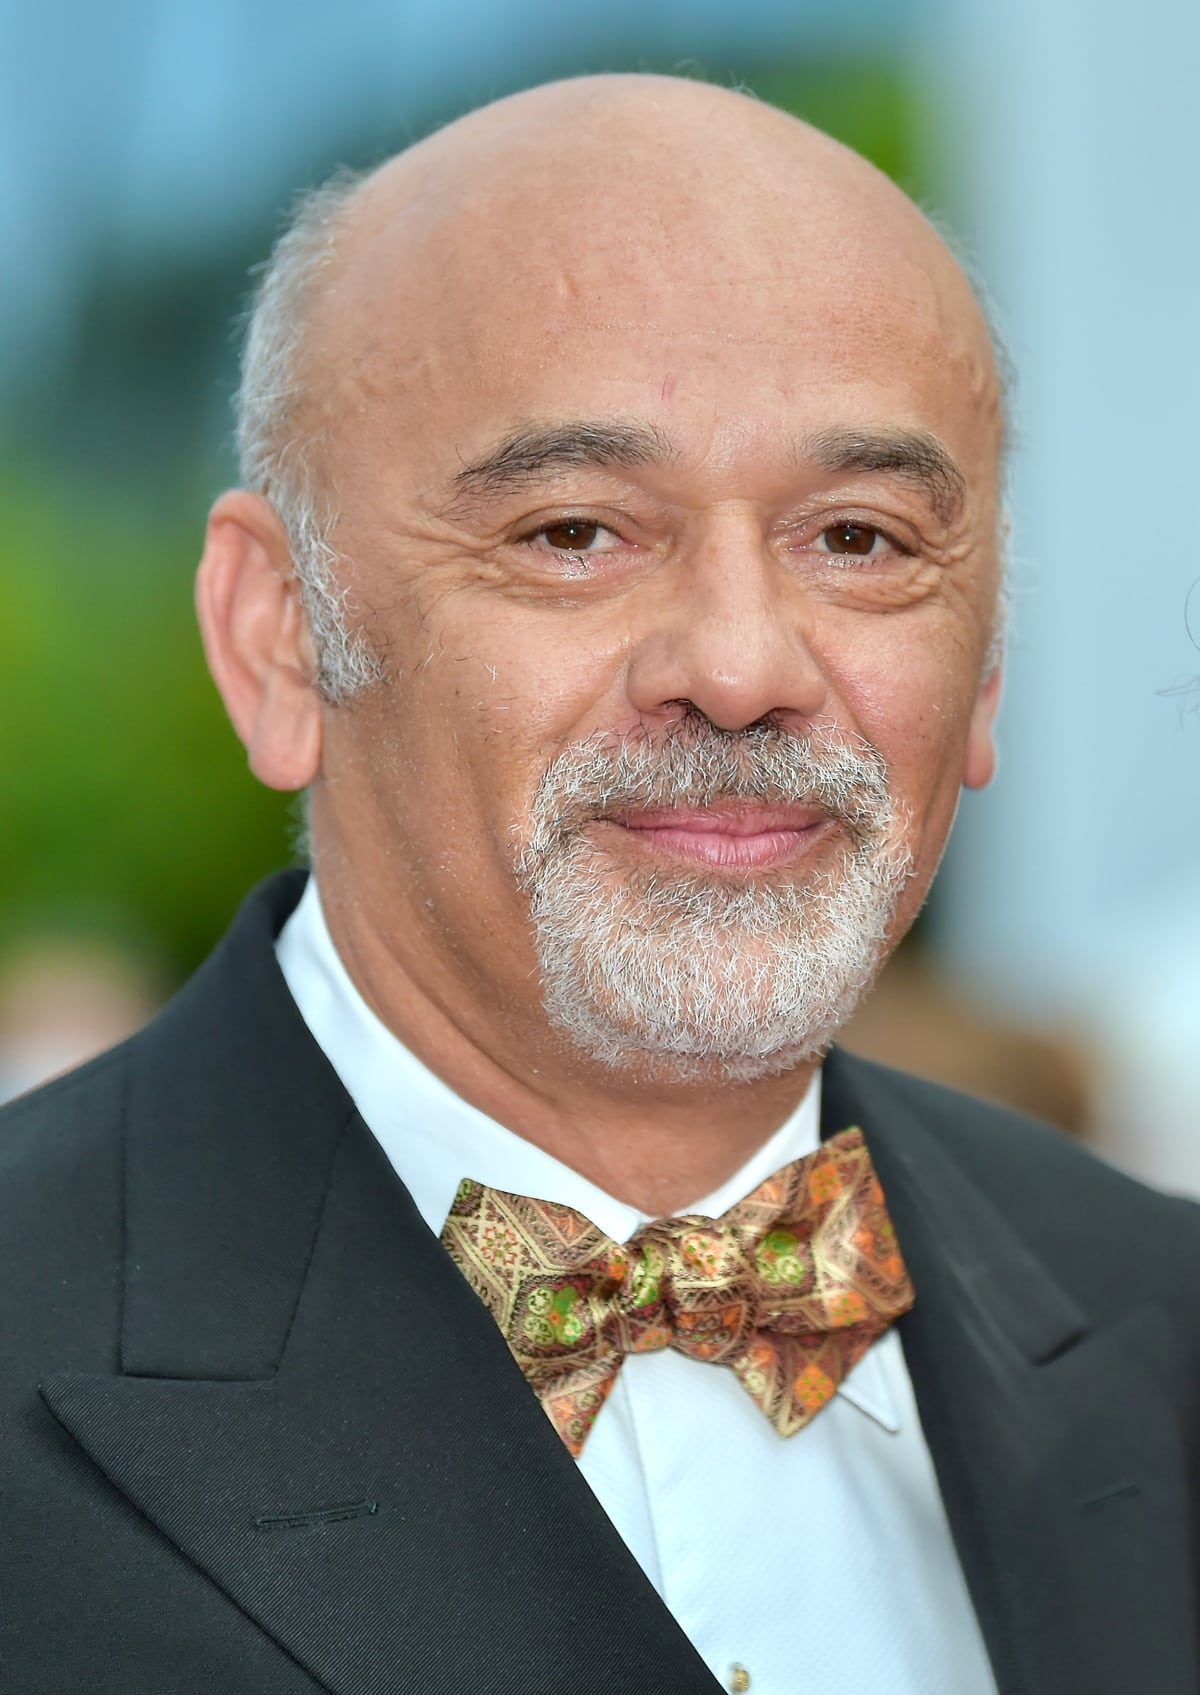 Prioritizing design, beauty, and sexiness, Christian Louboutin has made clear he's not focusing on comfort when designing heels